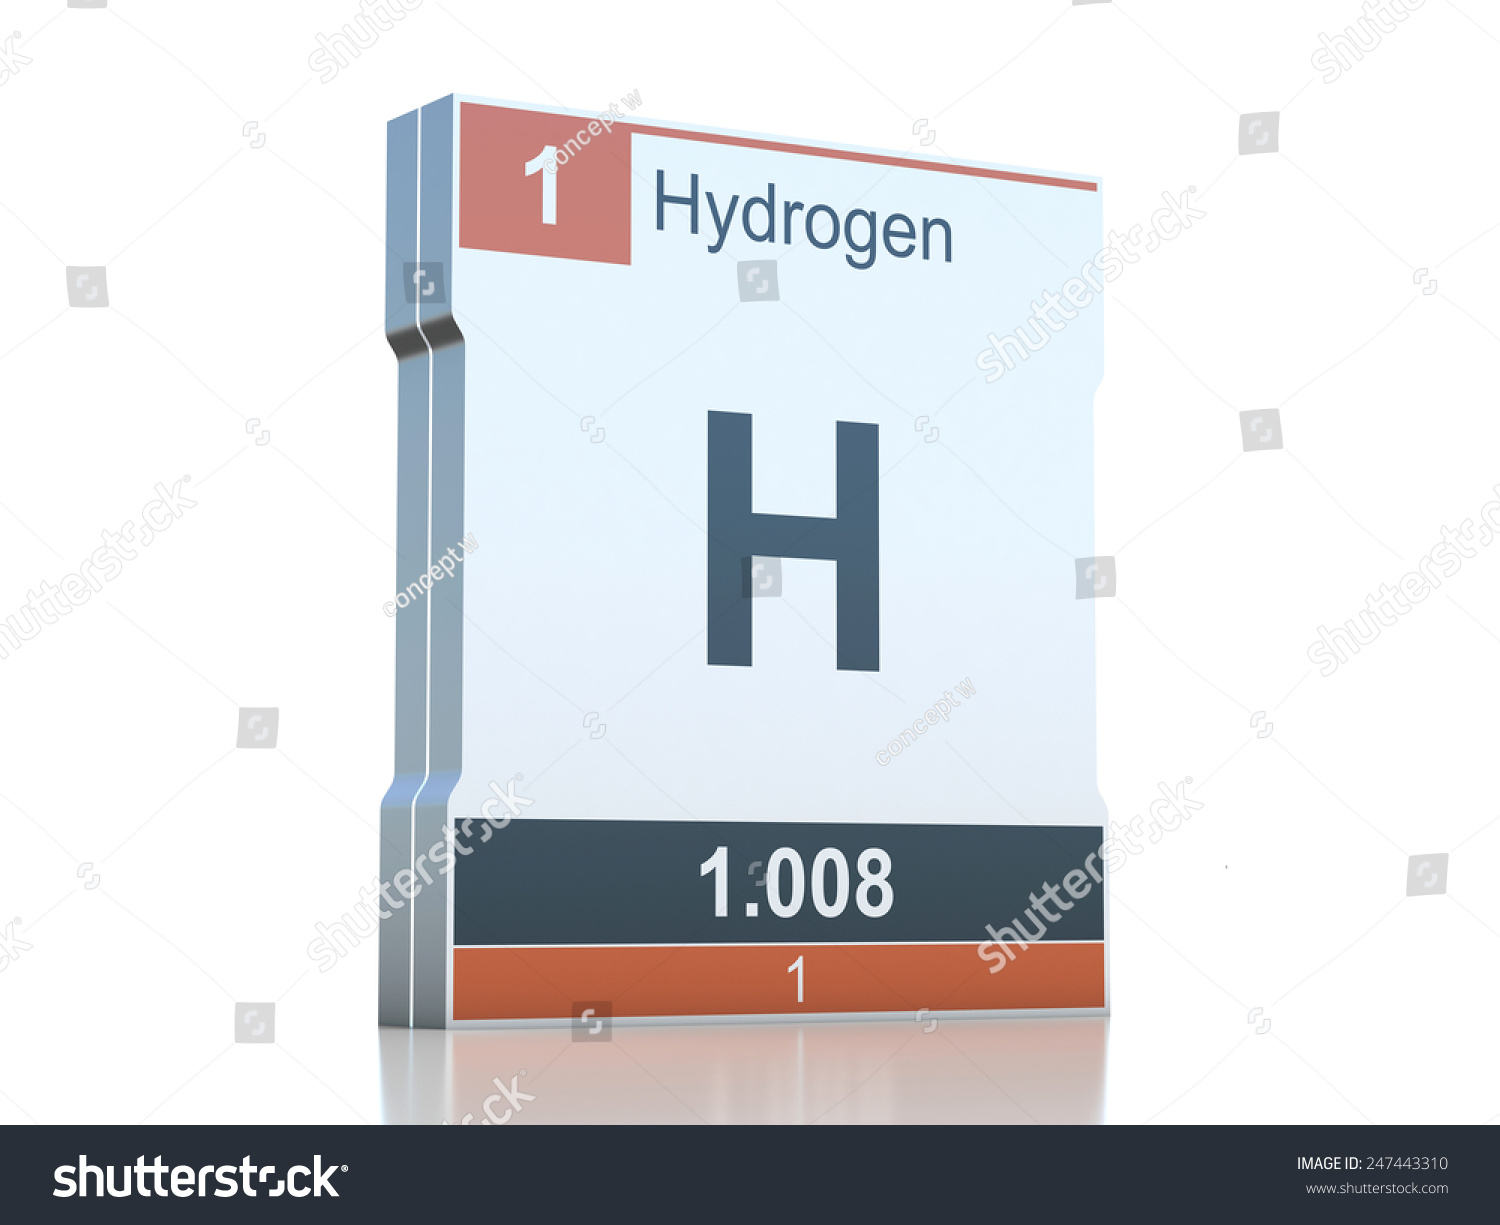 Fluorine symbol periodic table image collections periodic table hydrogen symbol element periodic table stock illustration hydrogen symbol element from the periodic table gamestrikefo image gamestrikefo Choice Image